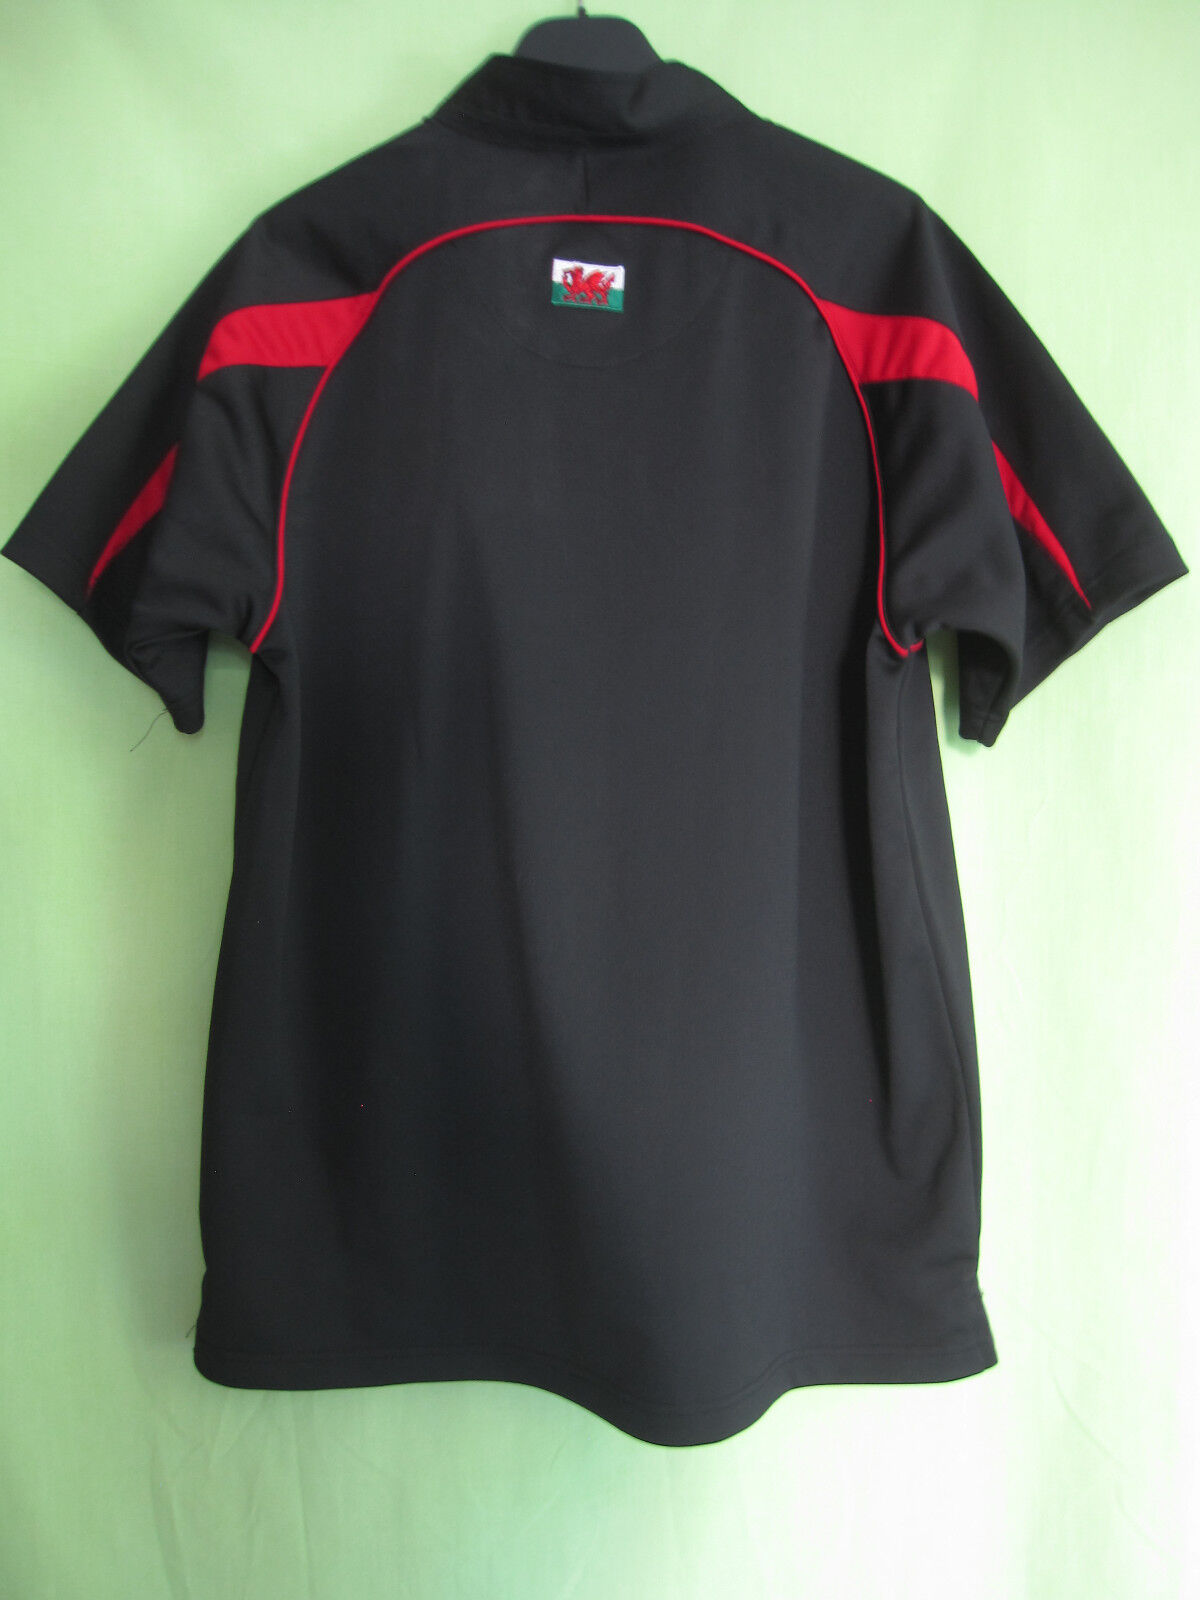 Maillot Rugby Pays de Galle CYMRU Manav Wales M Jersey Vintage - M Wales 062190